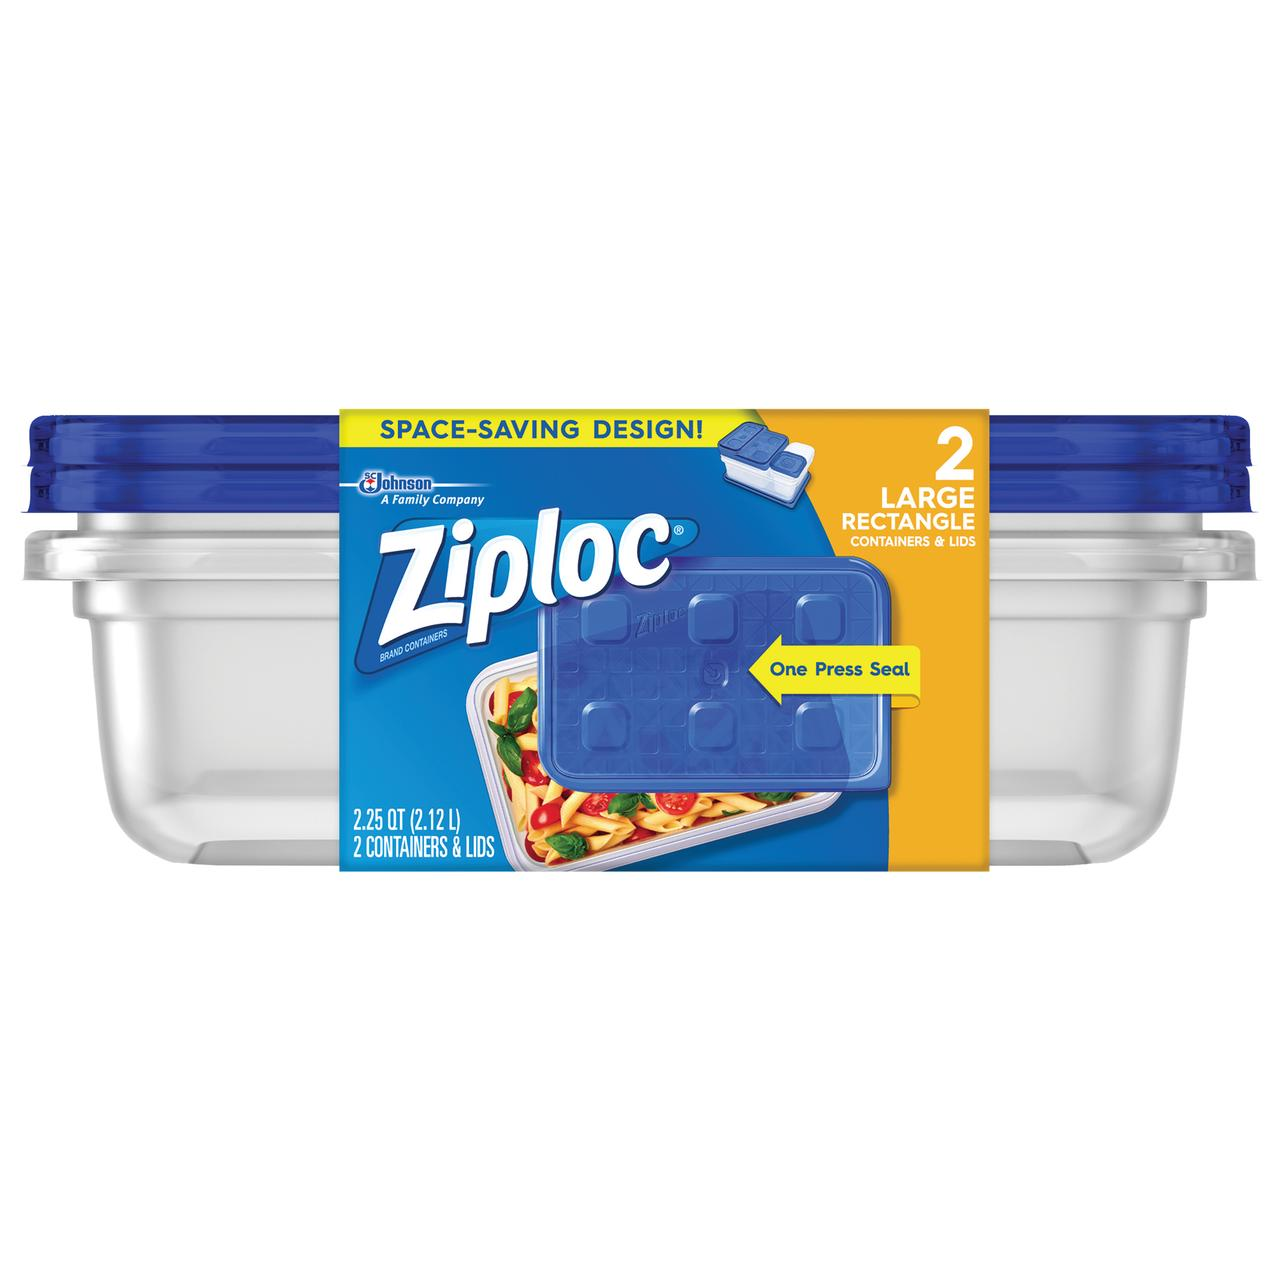 Picture suggestion for Ziploc